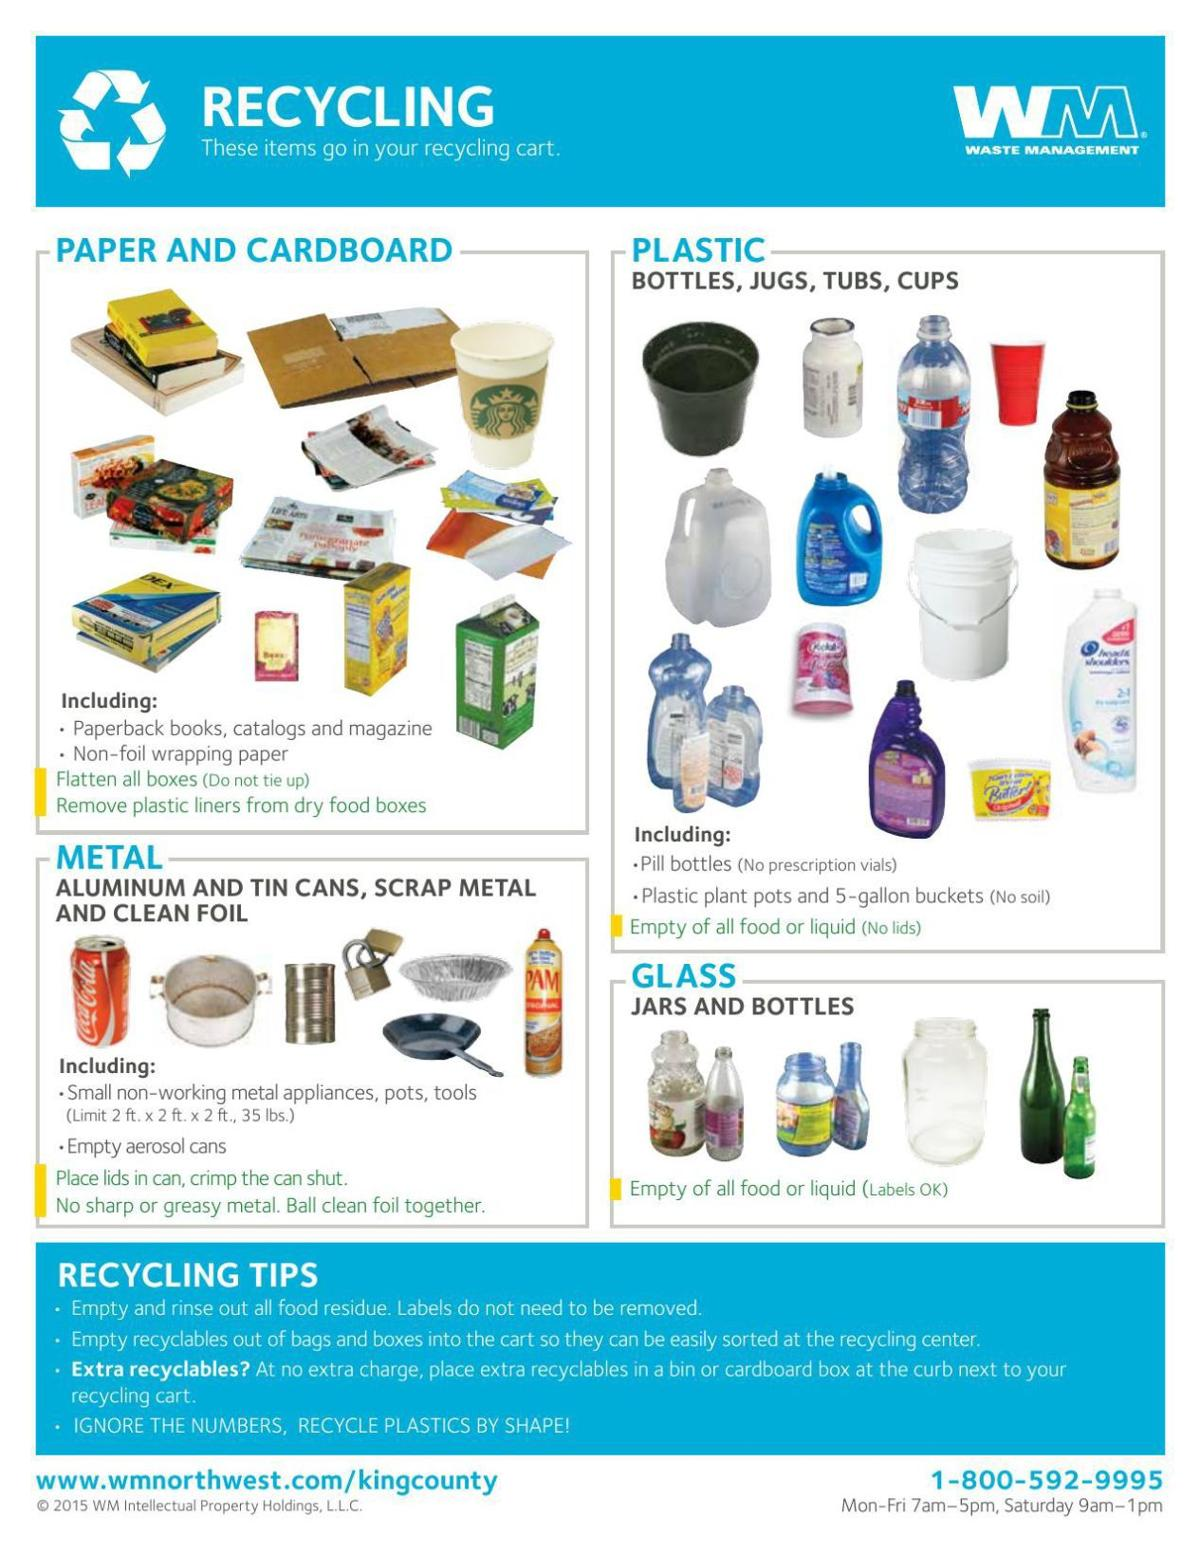 Waste Management recycling fact-sheet